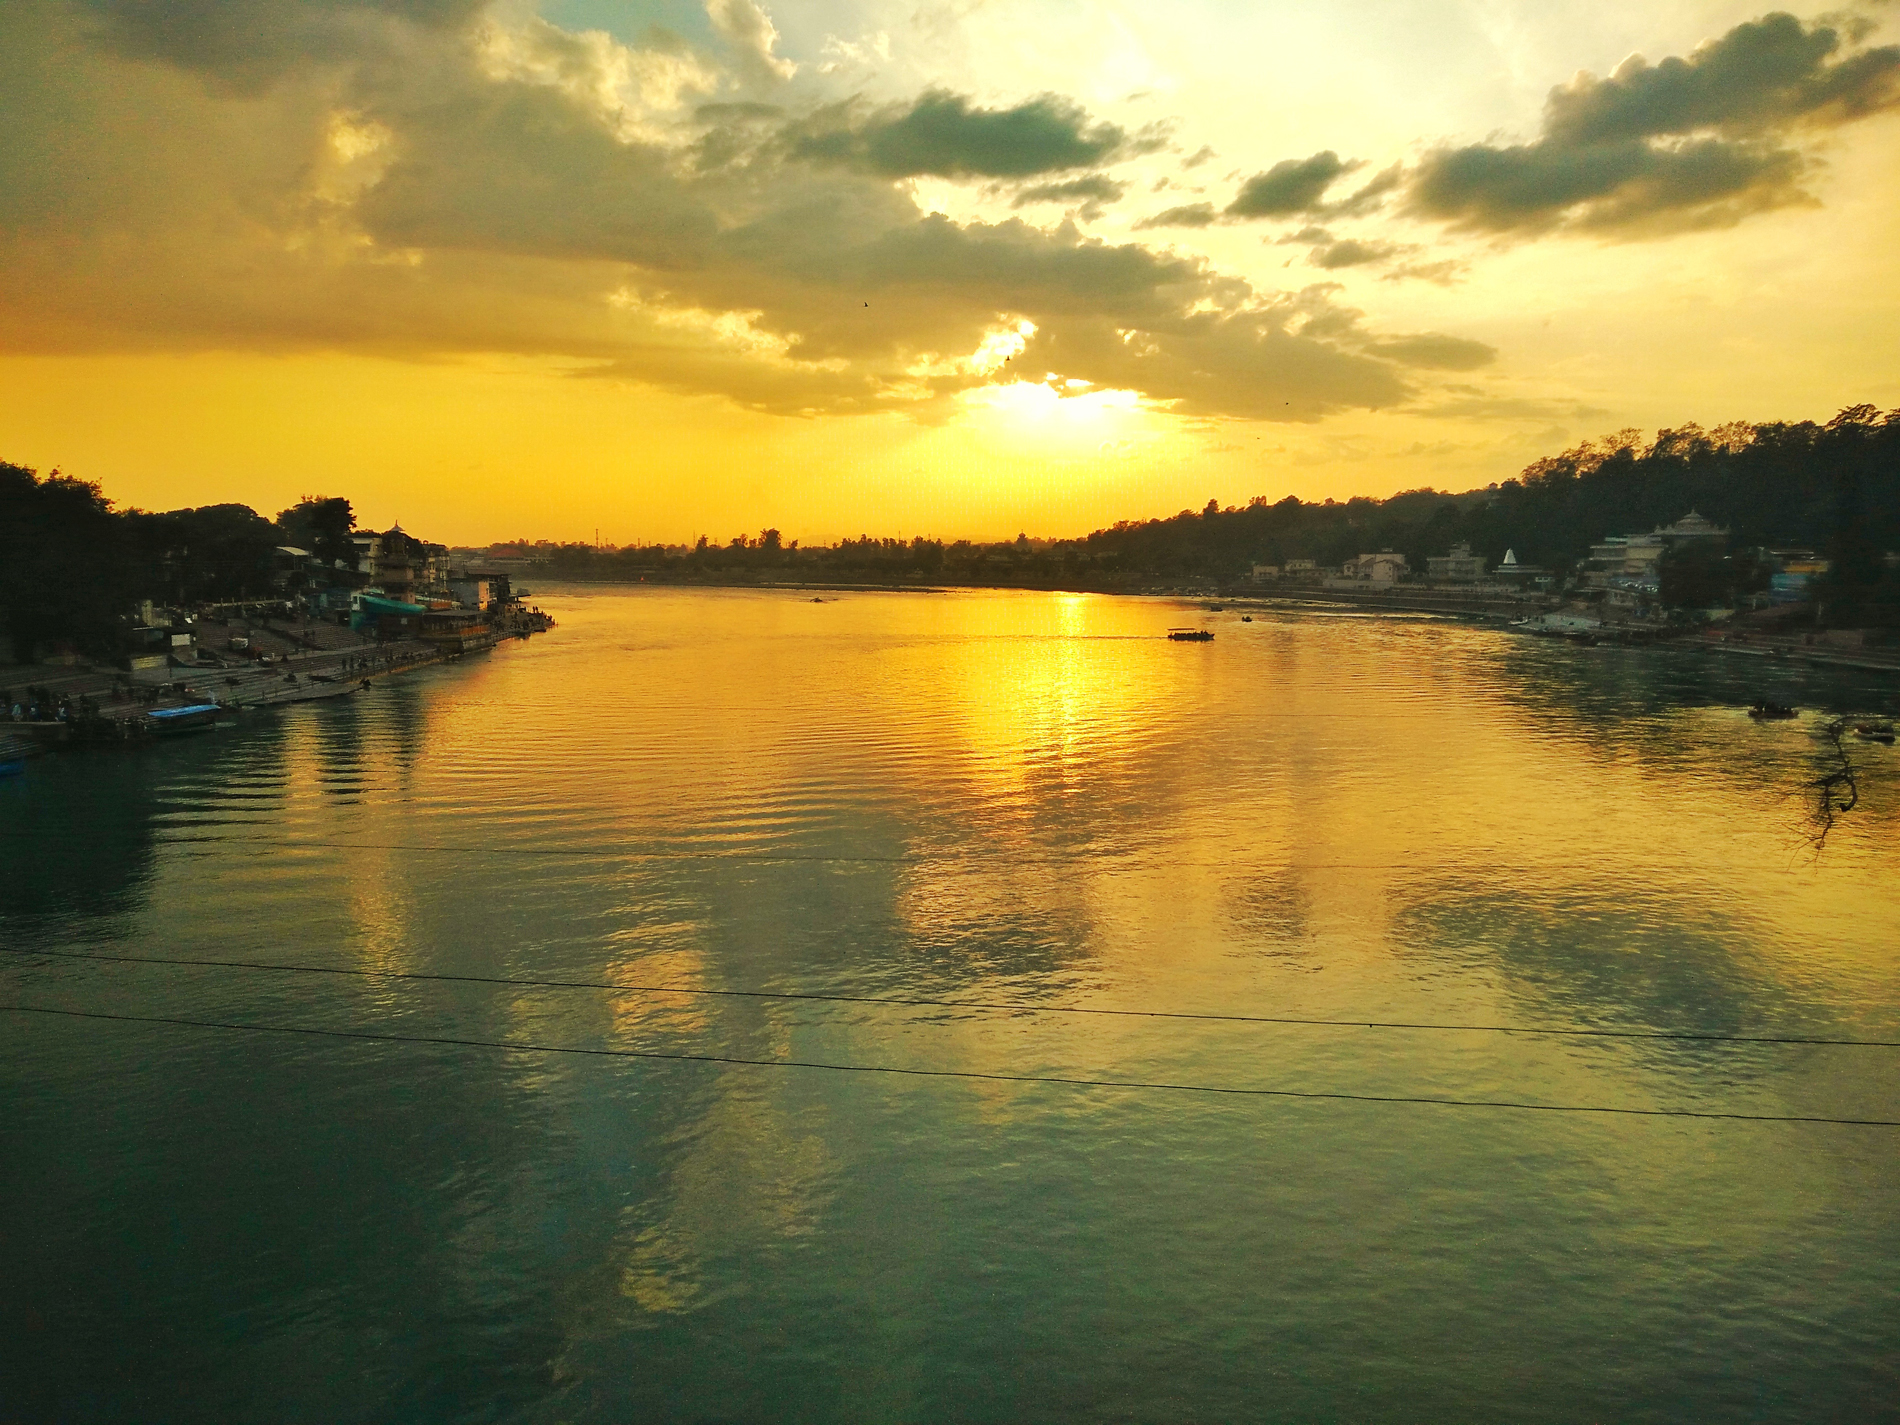 The picture captures a moment of stillness of the ever flowing river Ganga. This holy river is a witness to the days and nights, years and centuries and continues to witness the flow of time. Sitting by the side of this river, experiencing the coolness which the water carries, makes the sight of the sunset even more soothing and relaxing.